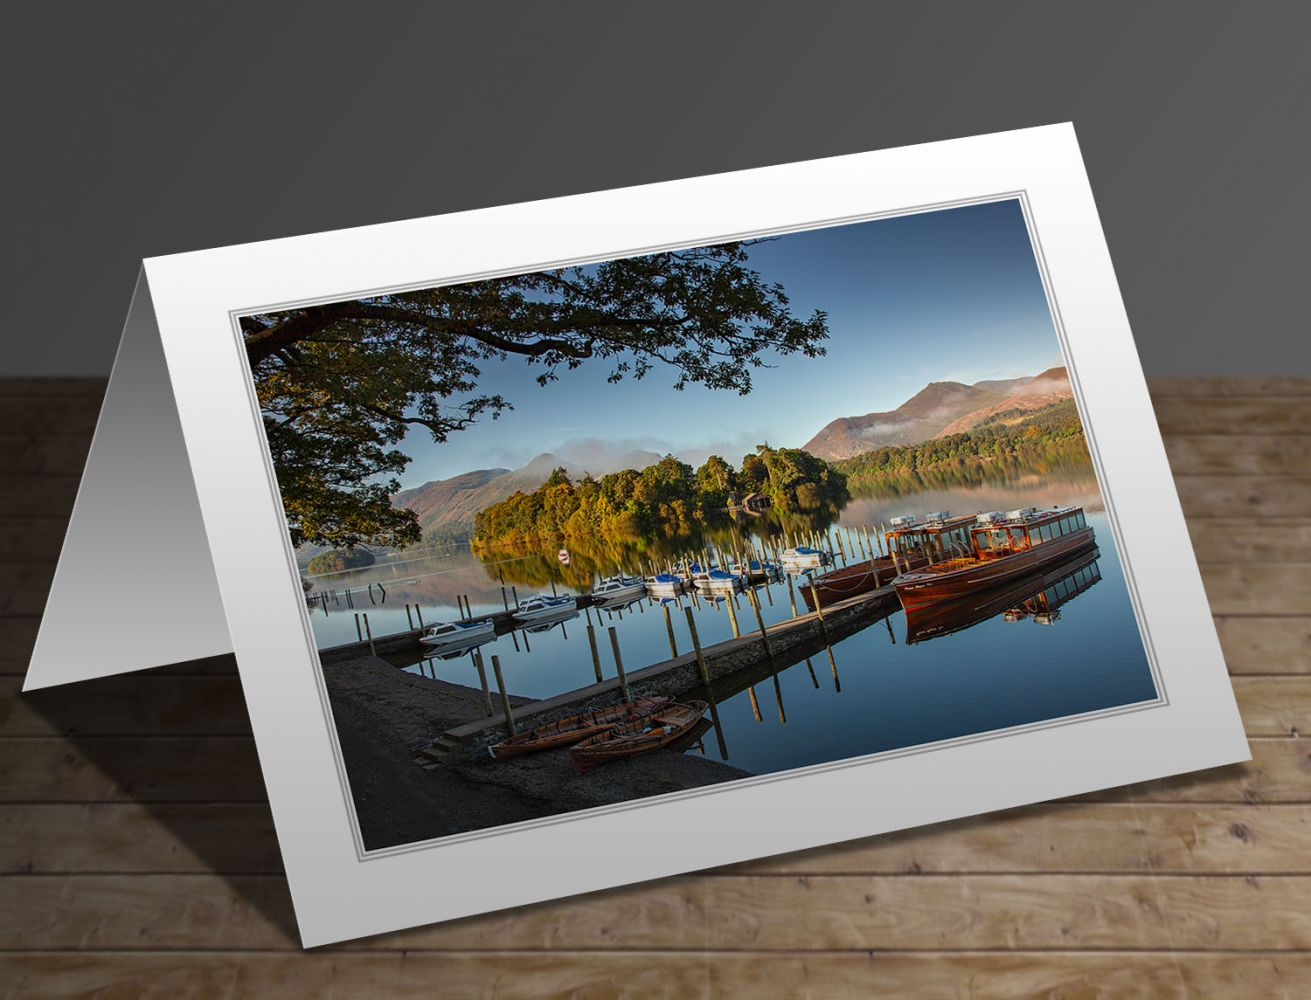 A greeting card containing the image Keswick Boat Landings on a still summer morning in the English Lake District by Martin Lawrence